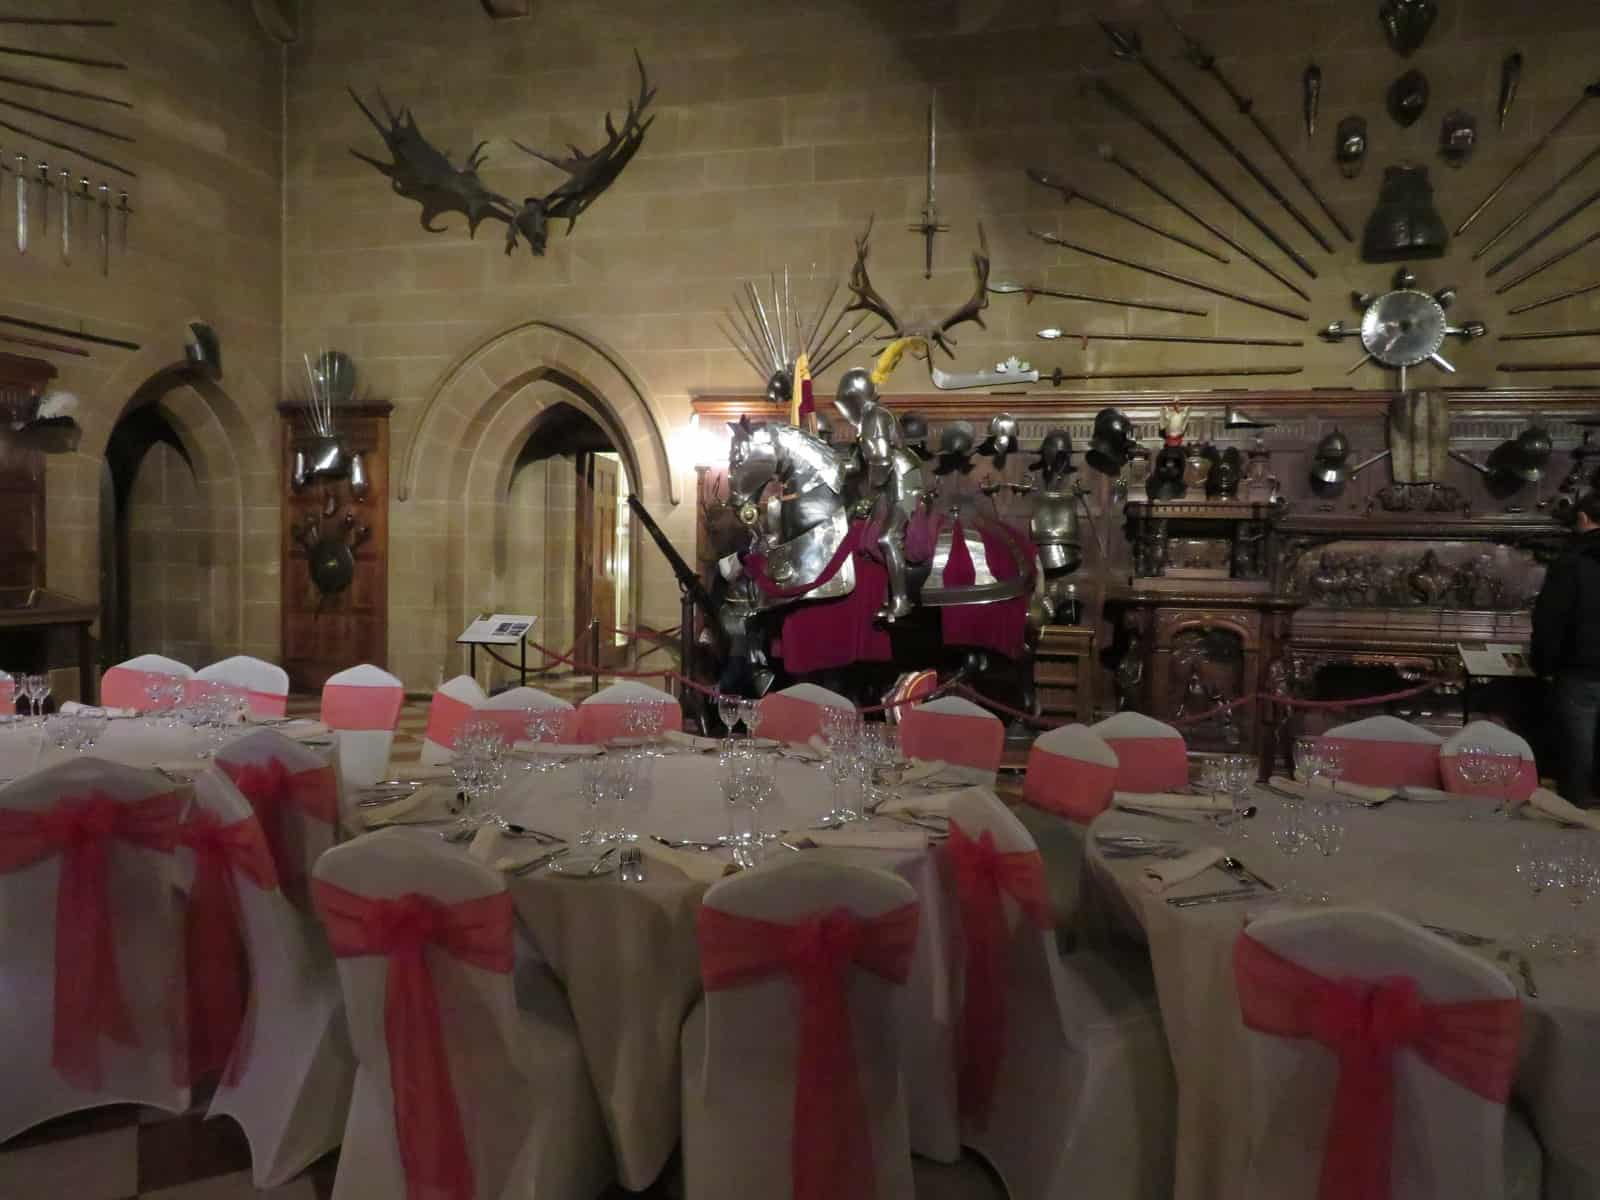 The Great Hall at Warwick Castle with the table set for a wedding with white and pink seat covers and glasses on the table. In the background is a suit of armour of a knight on horseback.